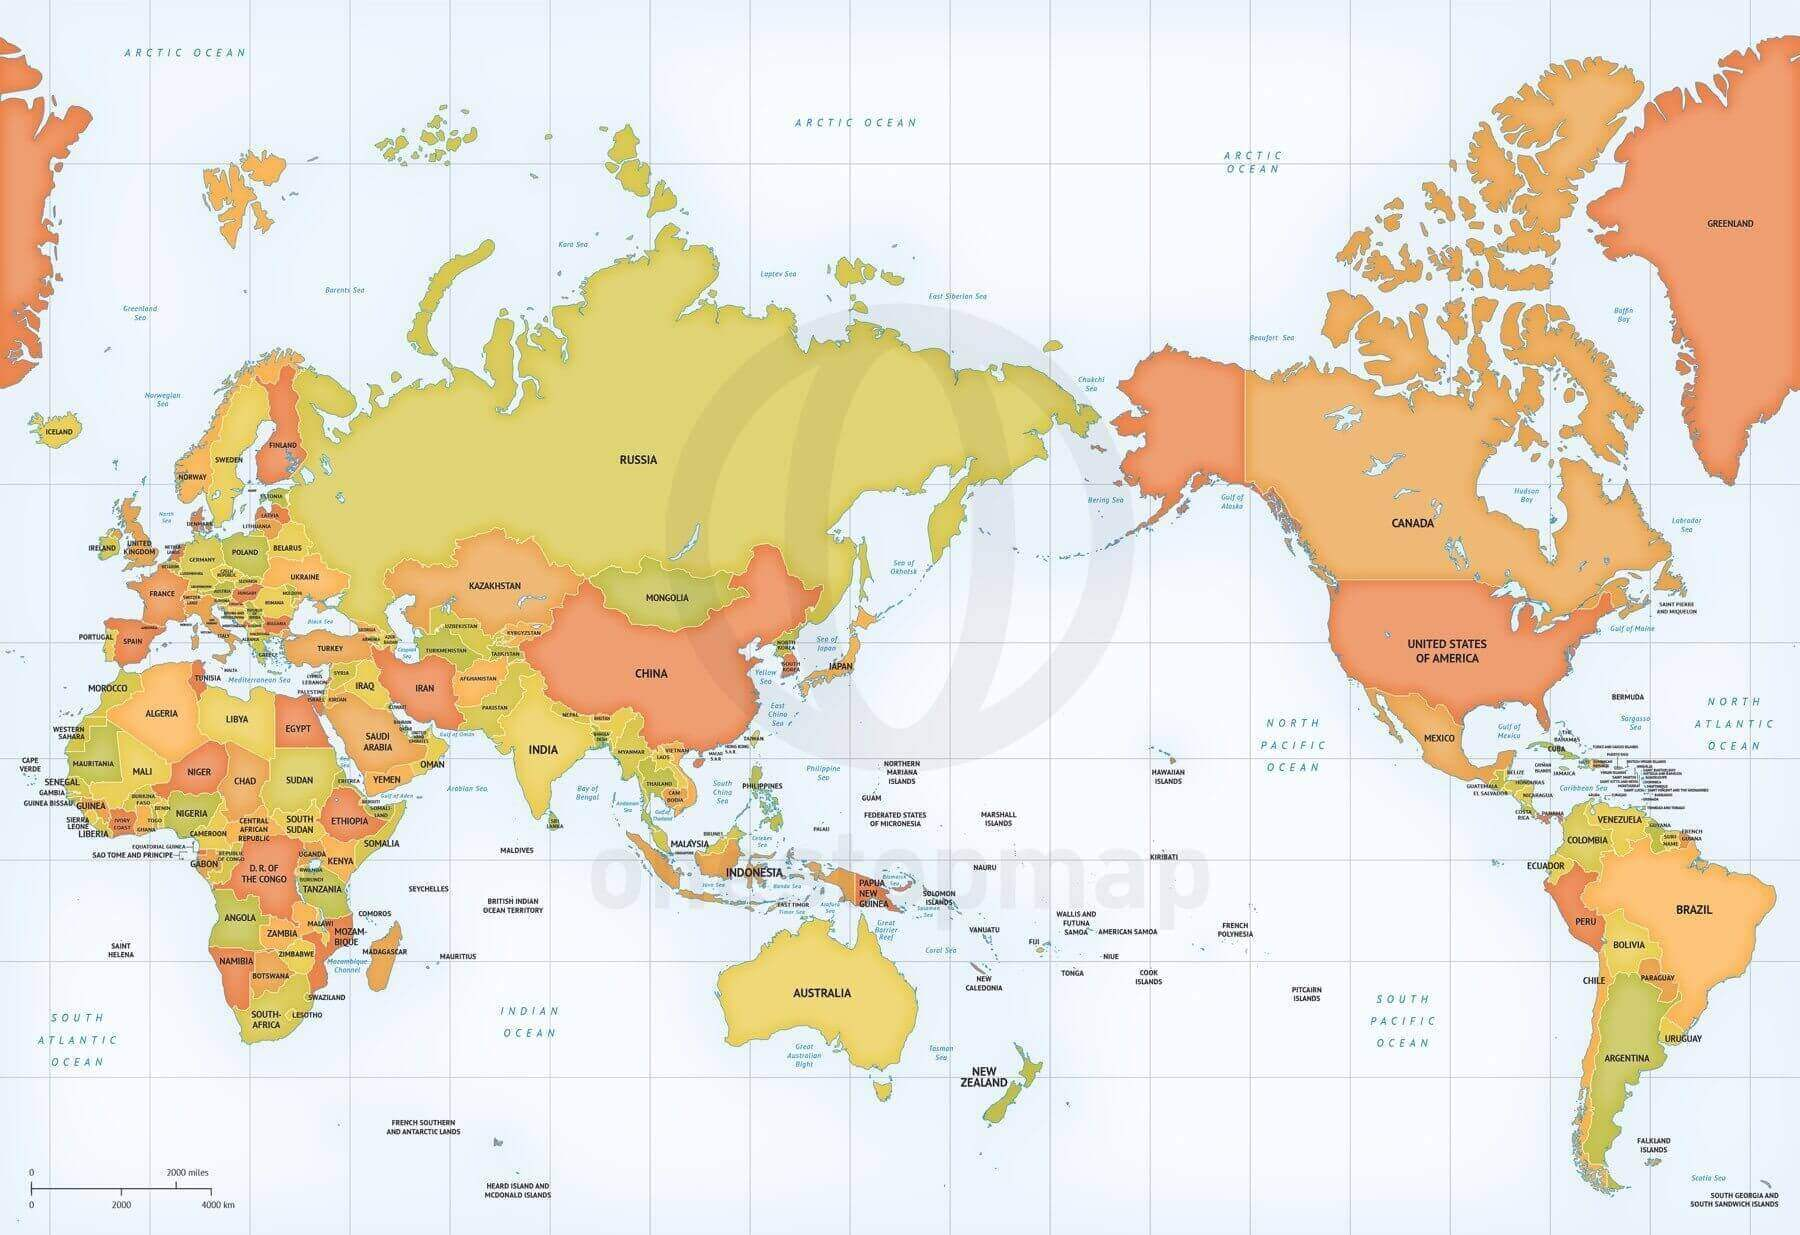 World Map With Australia.Map Of World Political Mercator Asia Australia Centered